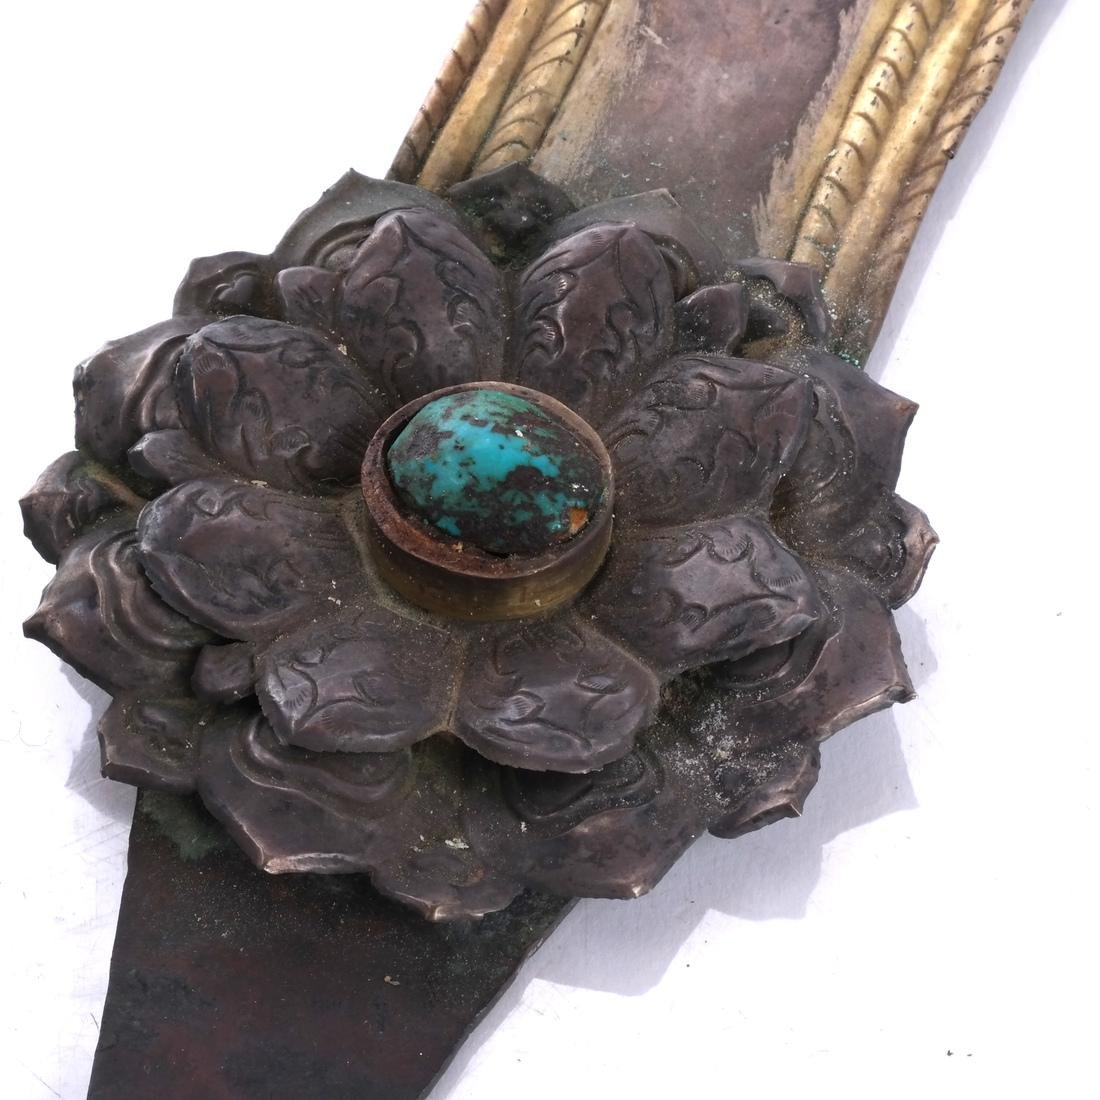 Asian, Tibetan Jewelry and Accessories - 4